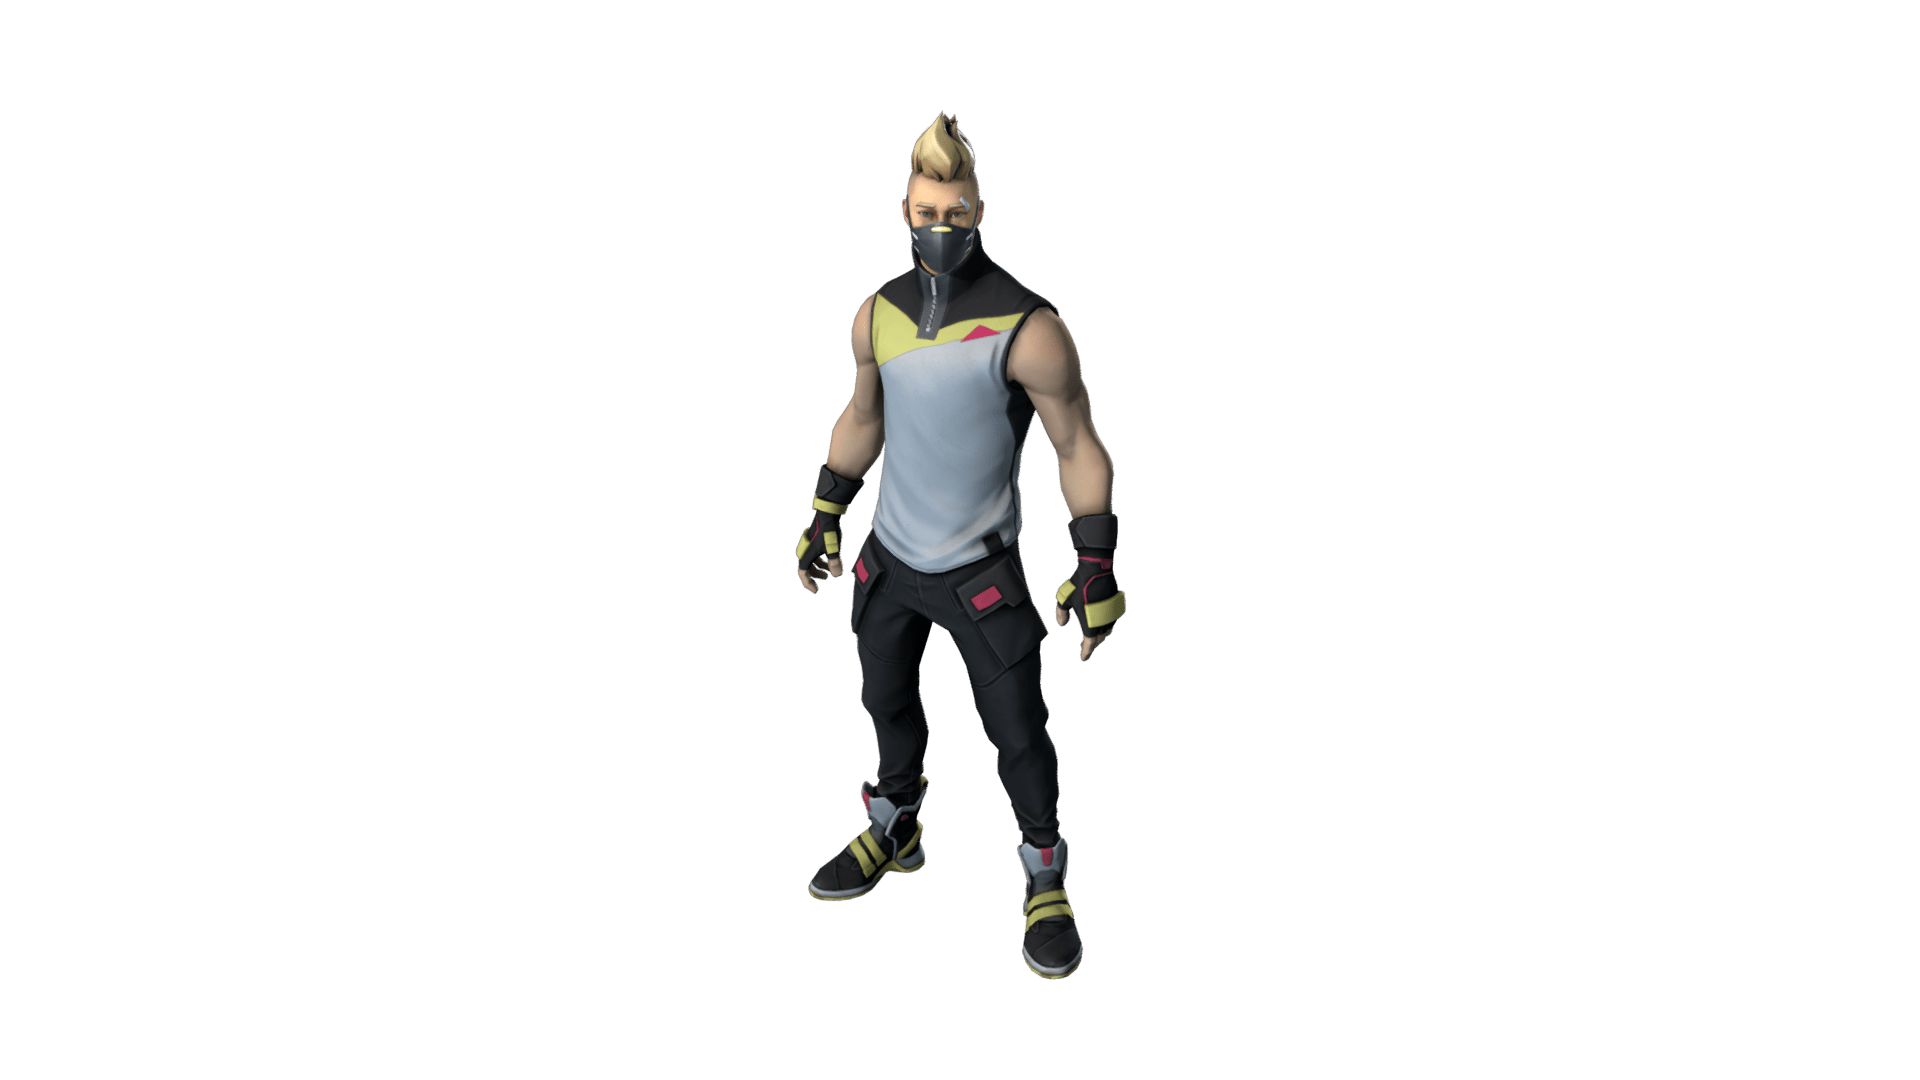 Outfit Fortnite Skin Picture Download image #47405